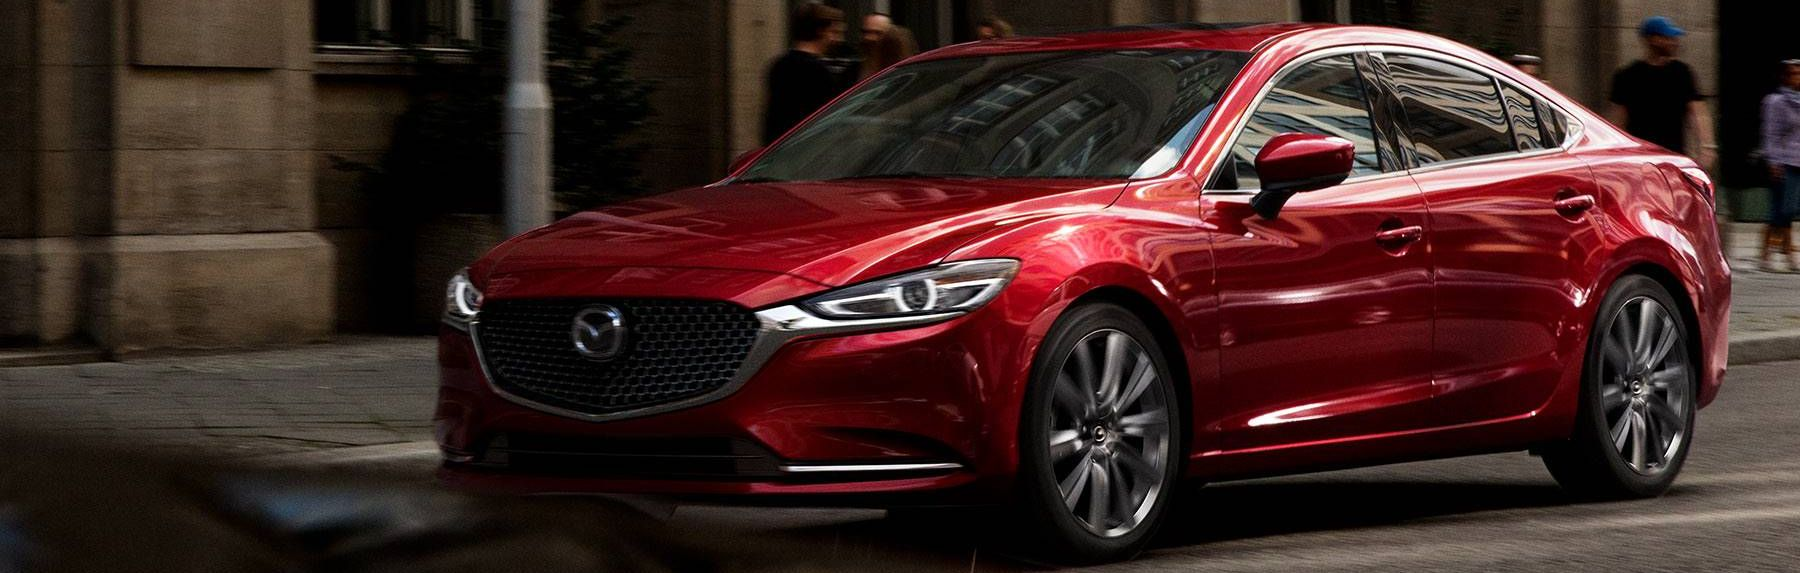 2018 Mazda6 Financing in Elk Grove, CA